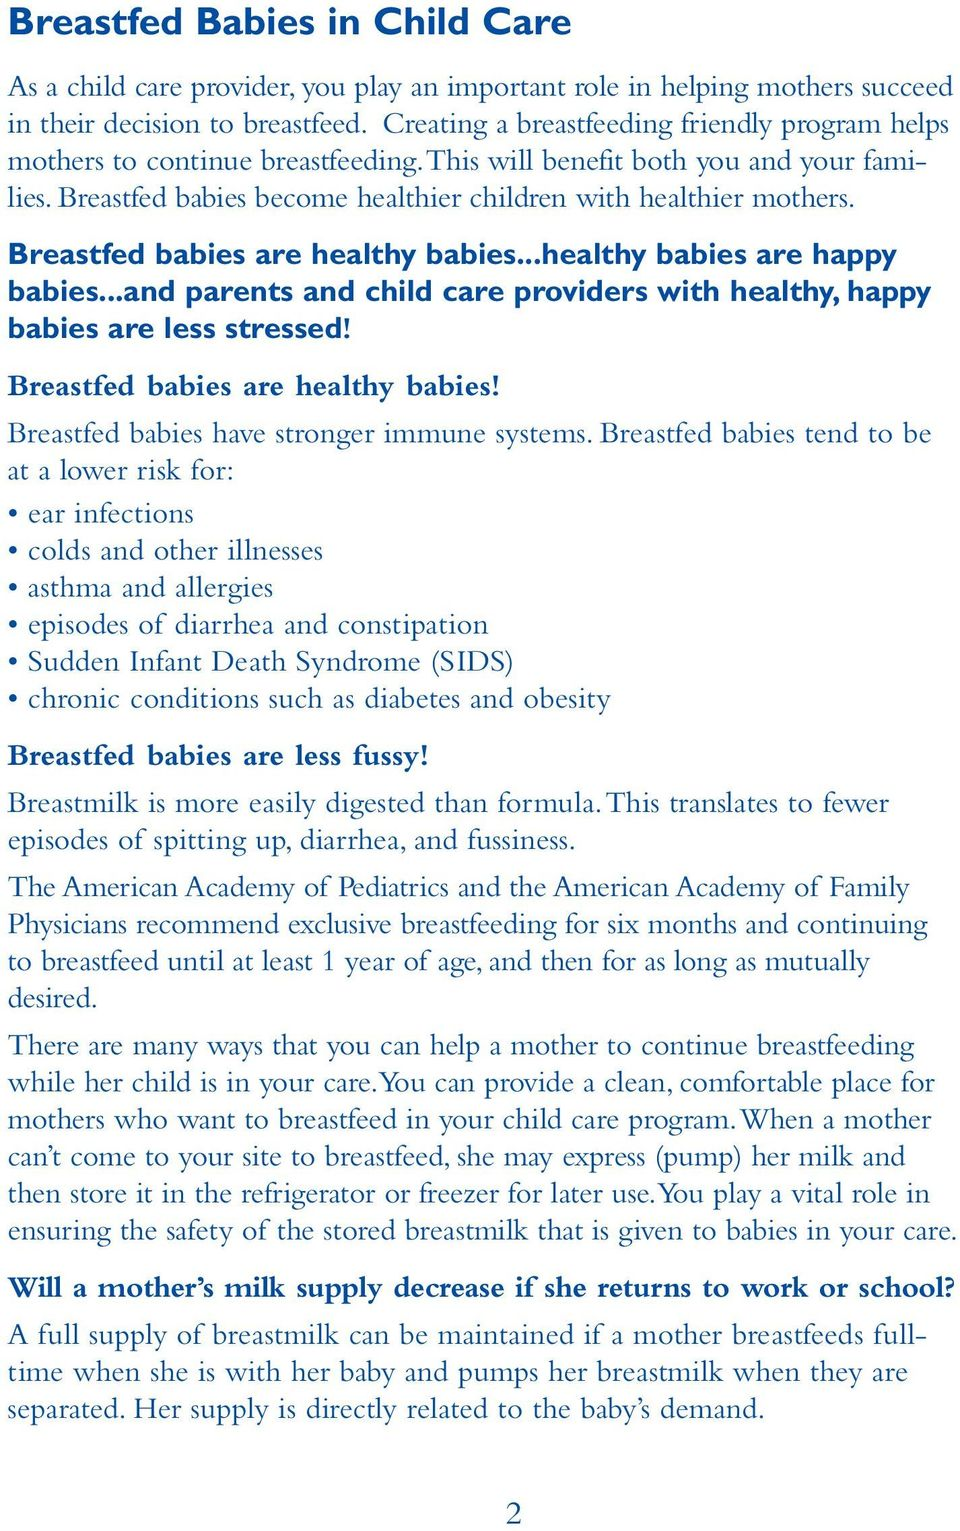 Breastfed babies are healthy babies...healthy babies are happy babies...and parents and child care providers with healthy, happy babies are less stressed! Breastfed babies are healthy babies!